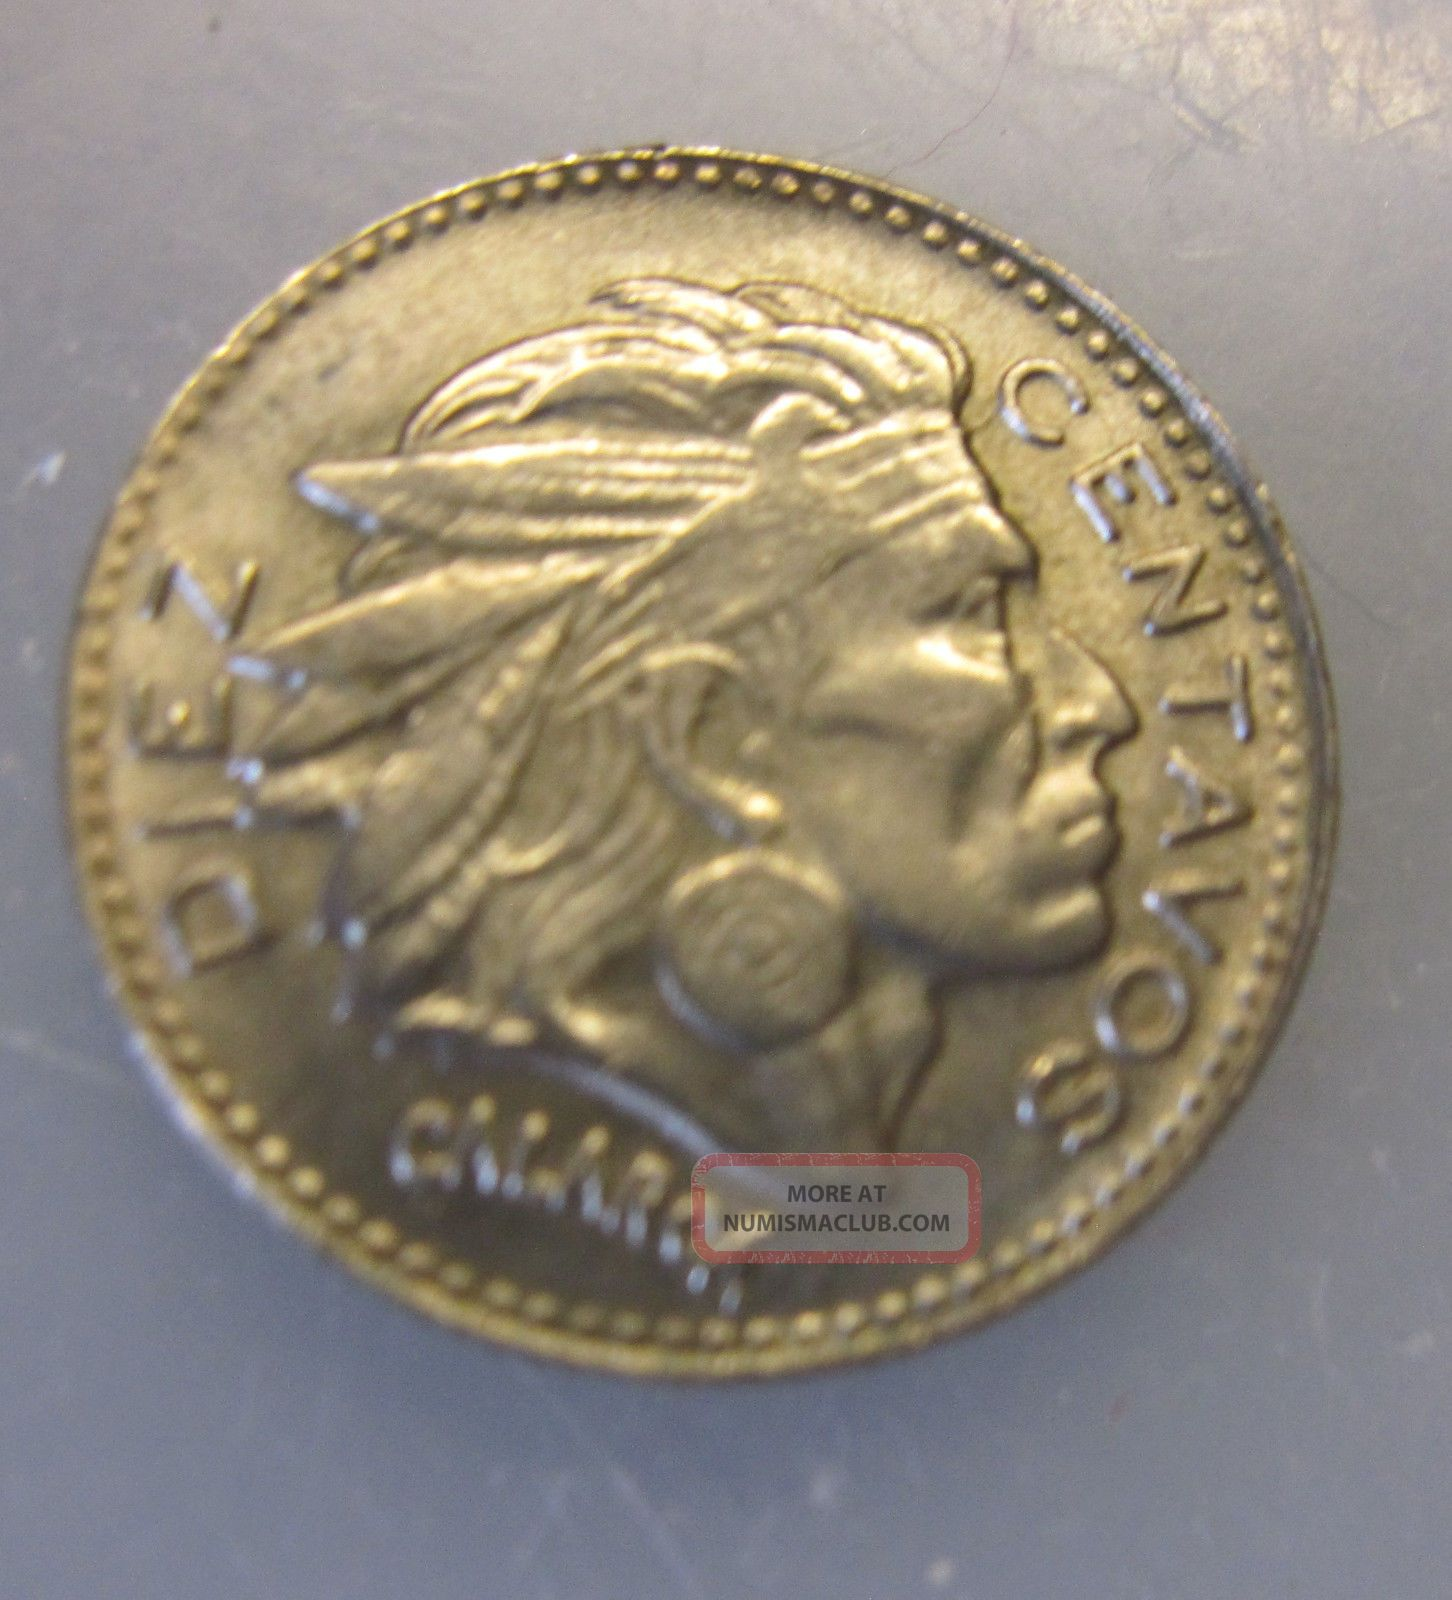 1964 Colombia 10 Centavos Coin Chief Calarca Pijaos